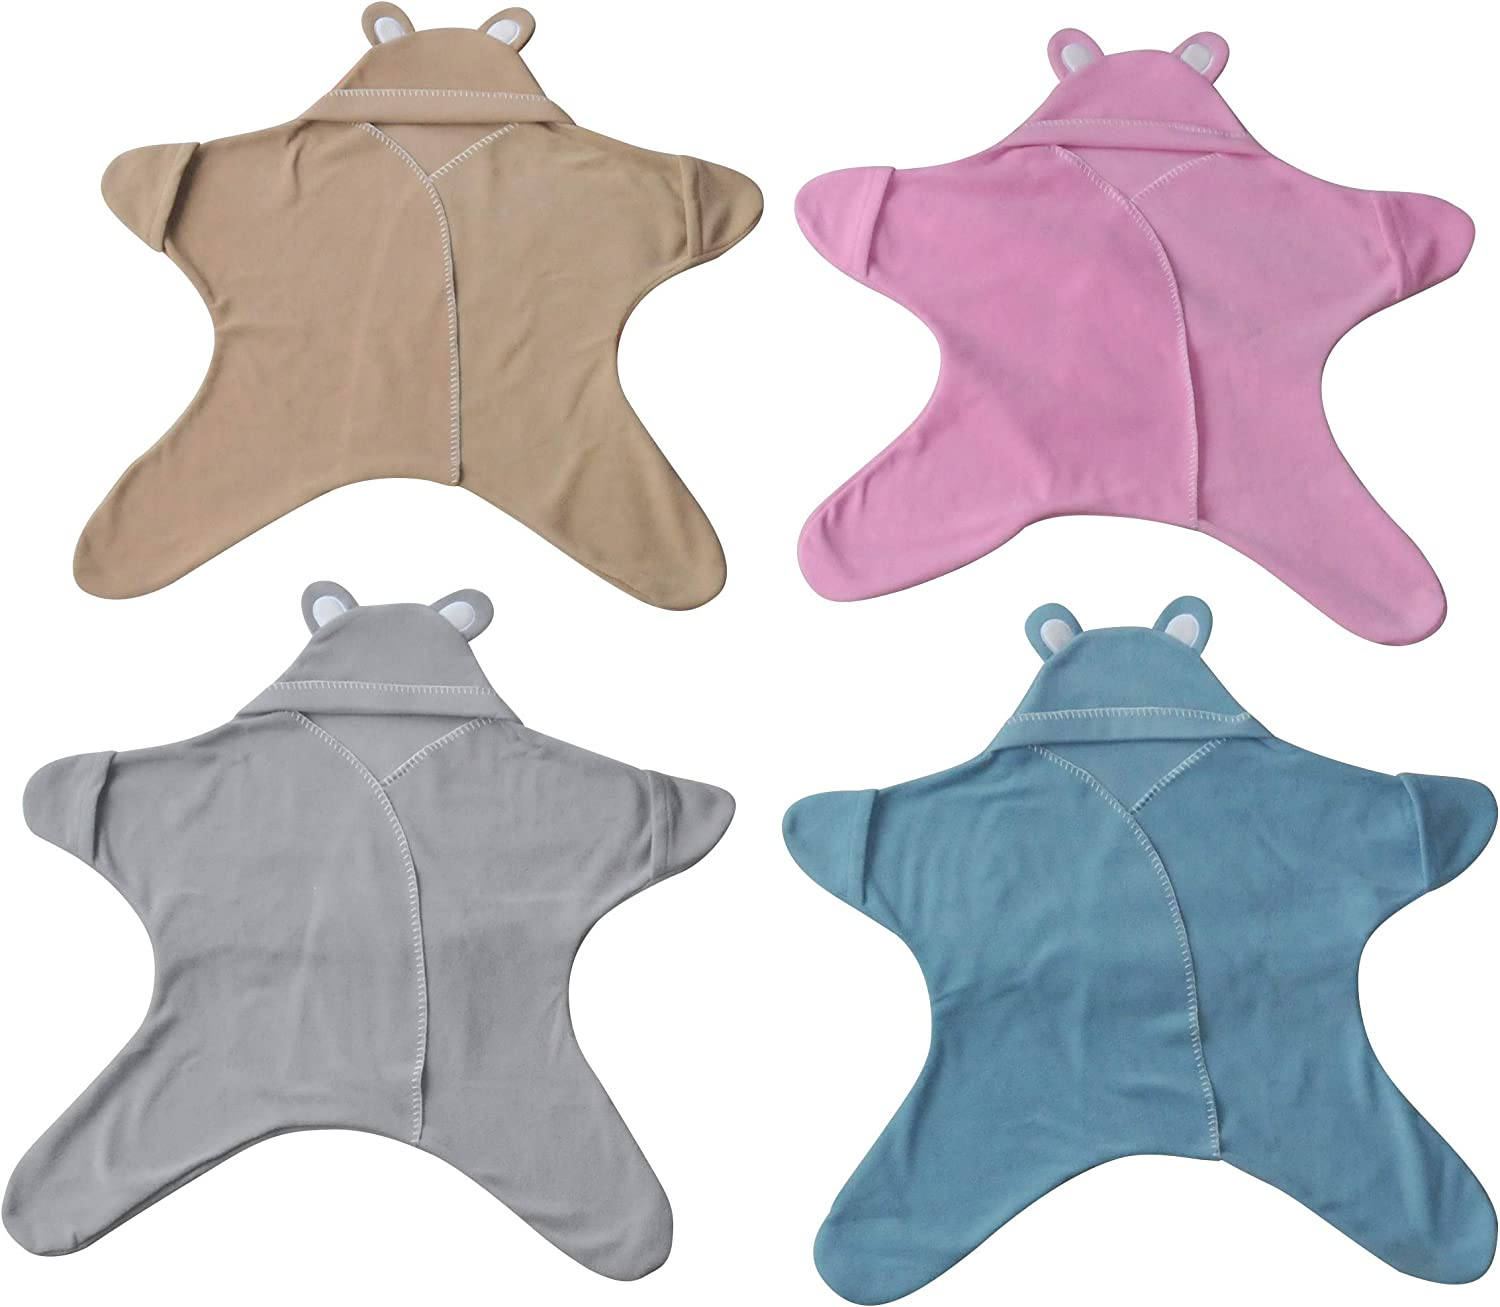 Use in Strollers /& Car Seats Super Soft The Perfect Gift 12 Month/'s  Boy//Girl Baby Wrap Blanket in Luxury Gift Box by Baby Bliss /® Swaddle//Star Wrap Fleece for Newborns Infants /& Toddlers 2